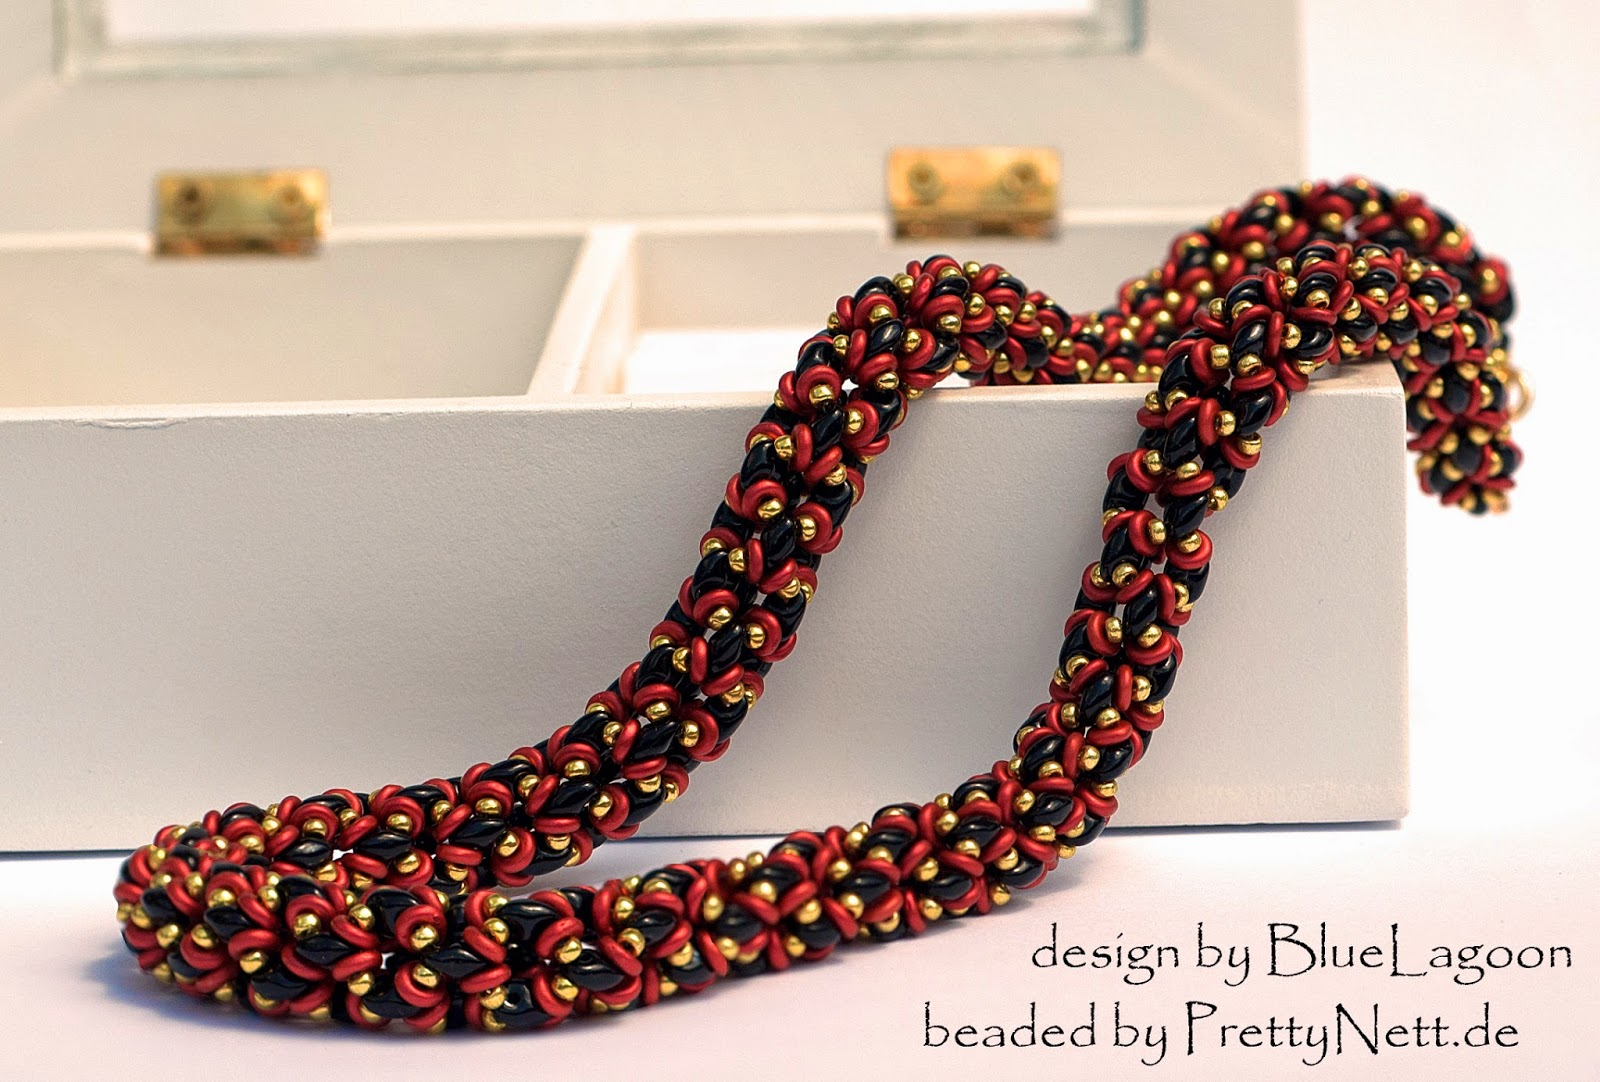 Necklace NetO beaded by PrettyNett